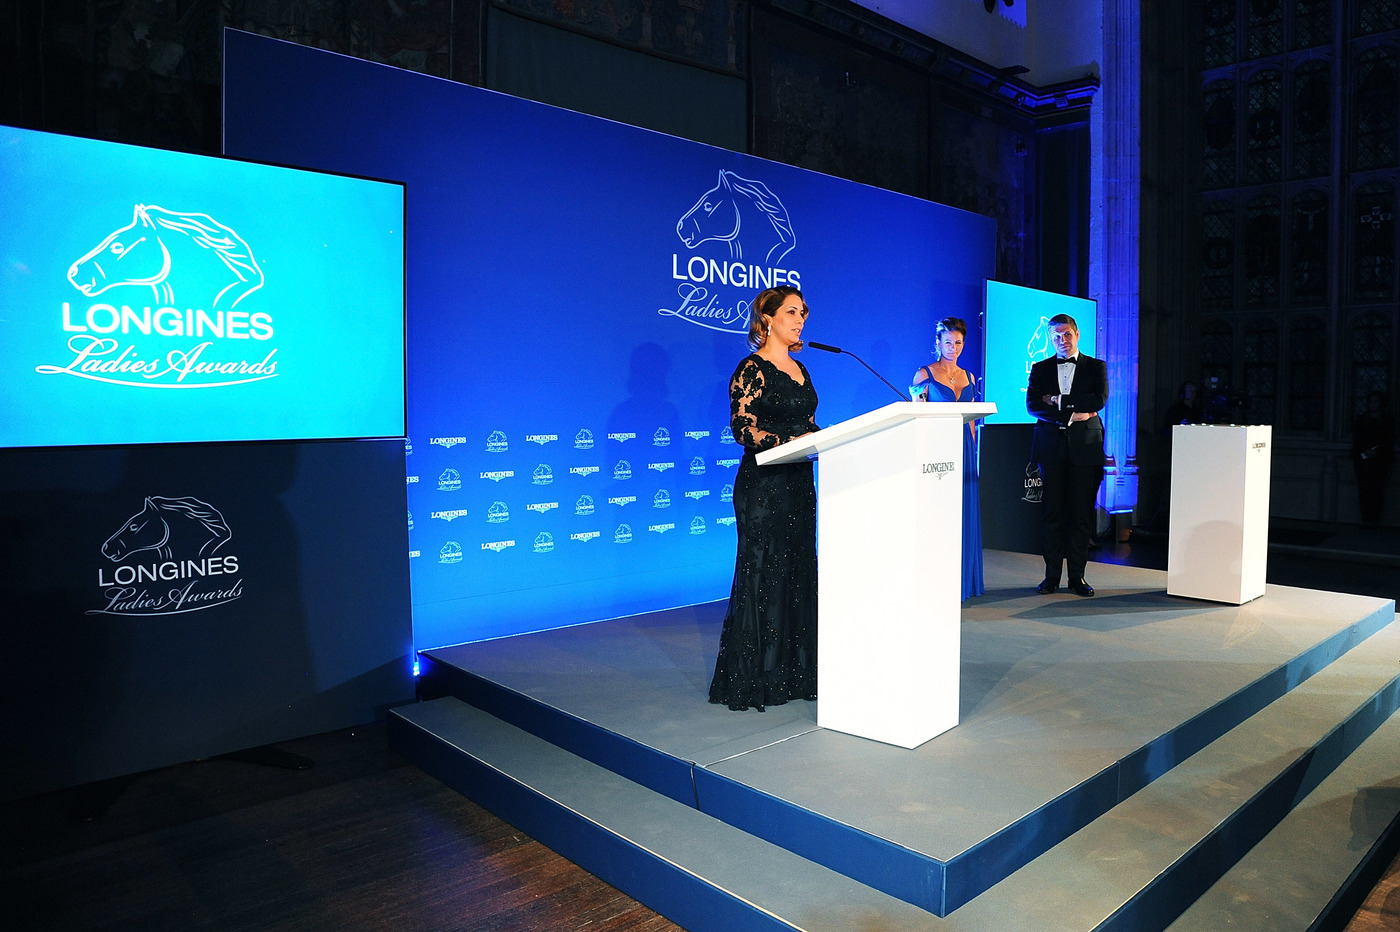 Longines Corporate Event: HRH Princess Haya honoured at the 2015 Longines Ladies Awards ceremony 1